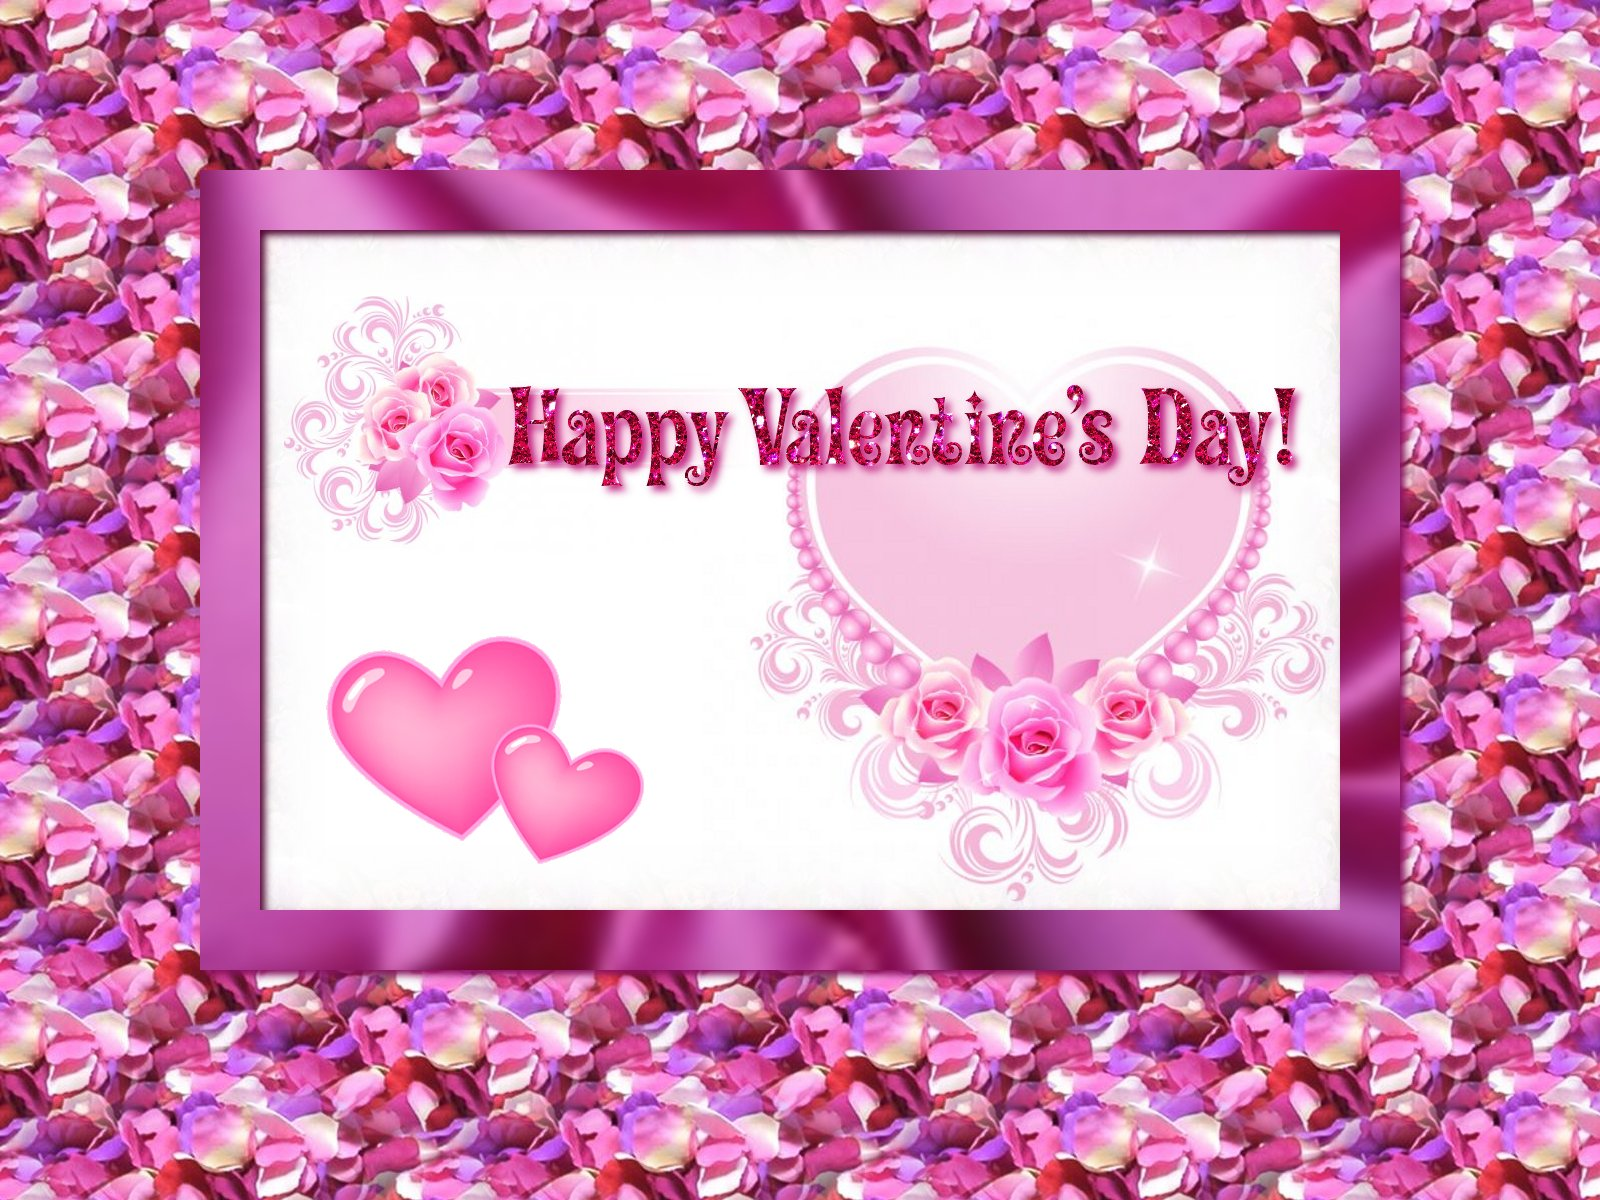 Happy Valentines Day HD Wallpaper, Images, Greetings 2013